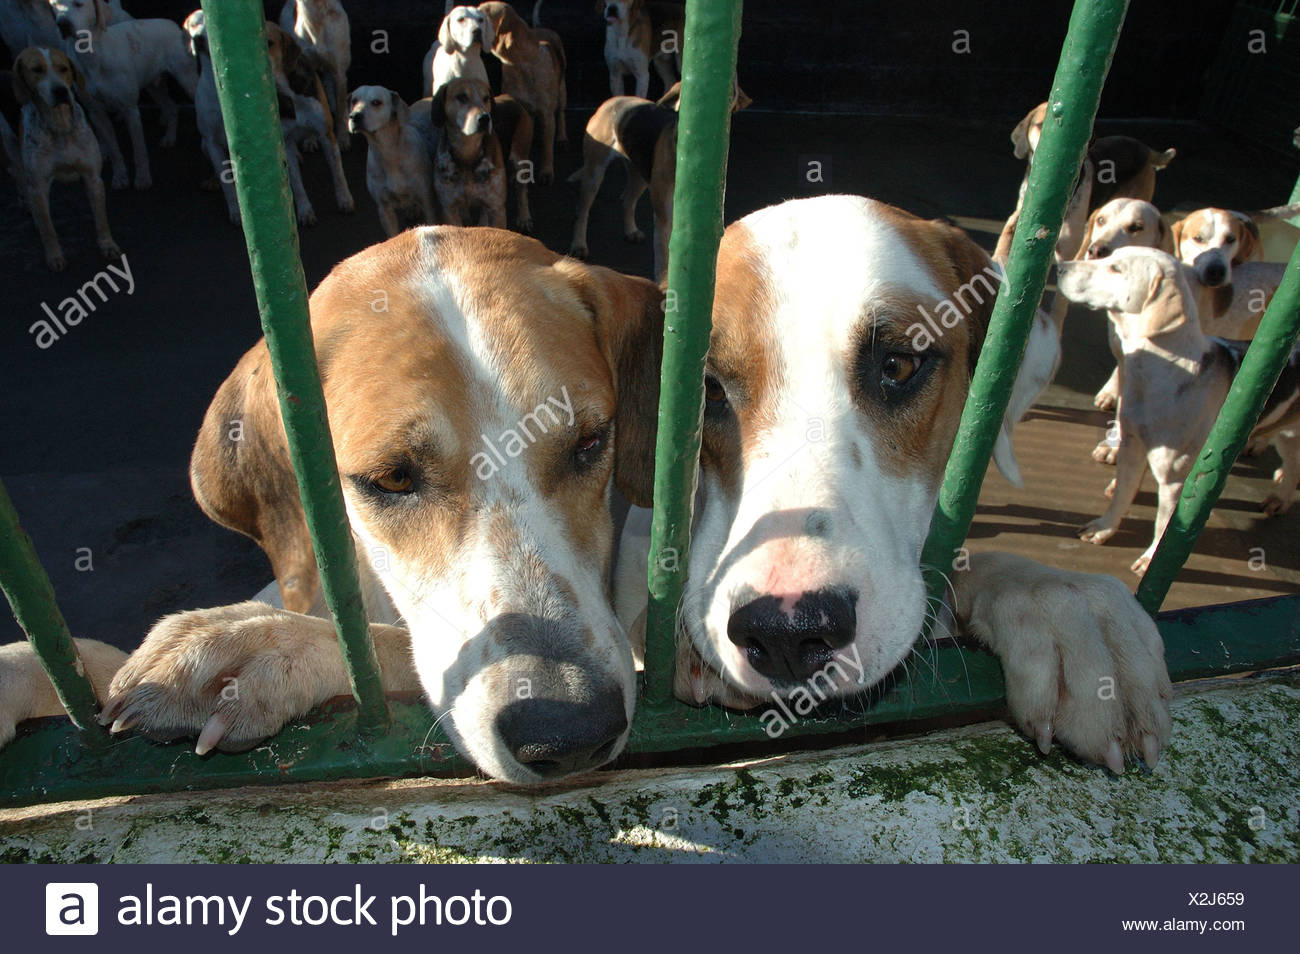 Beagles of Cheshire Forest Hunt Feb 2005 UK - Stock Image